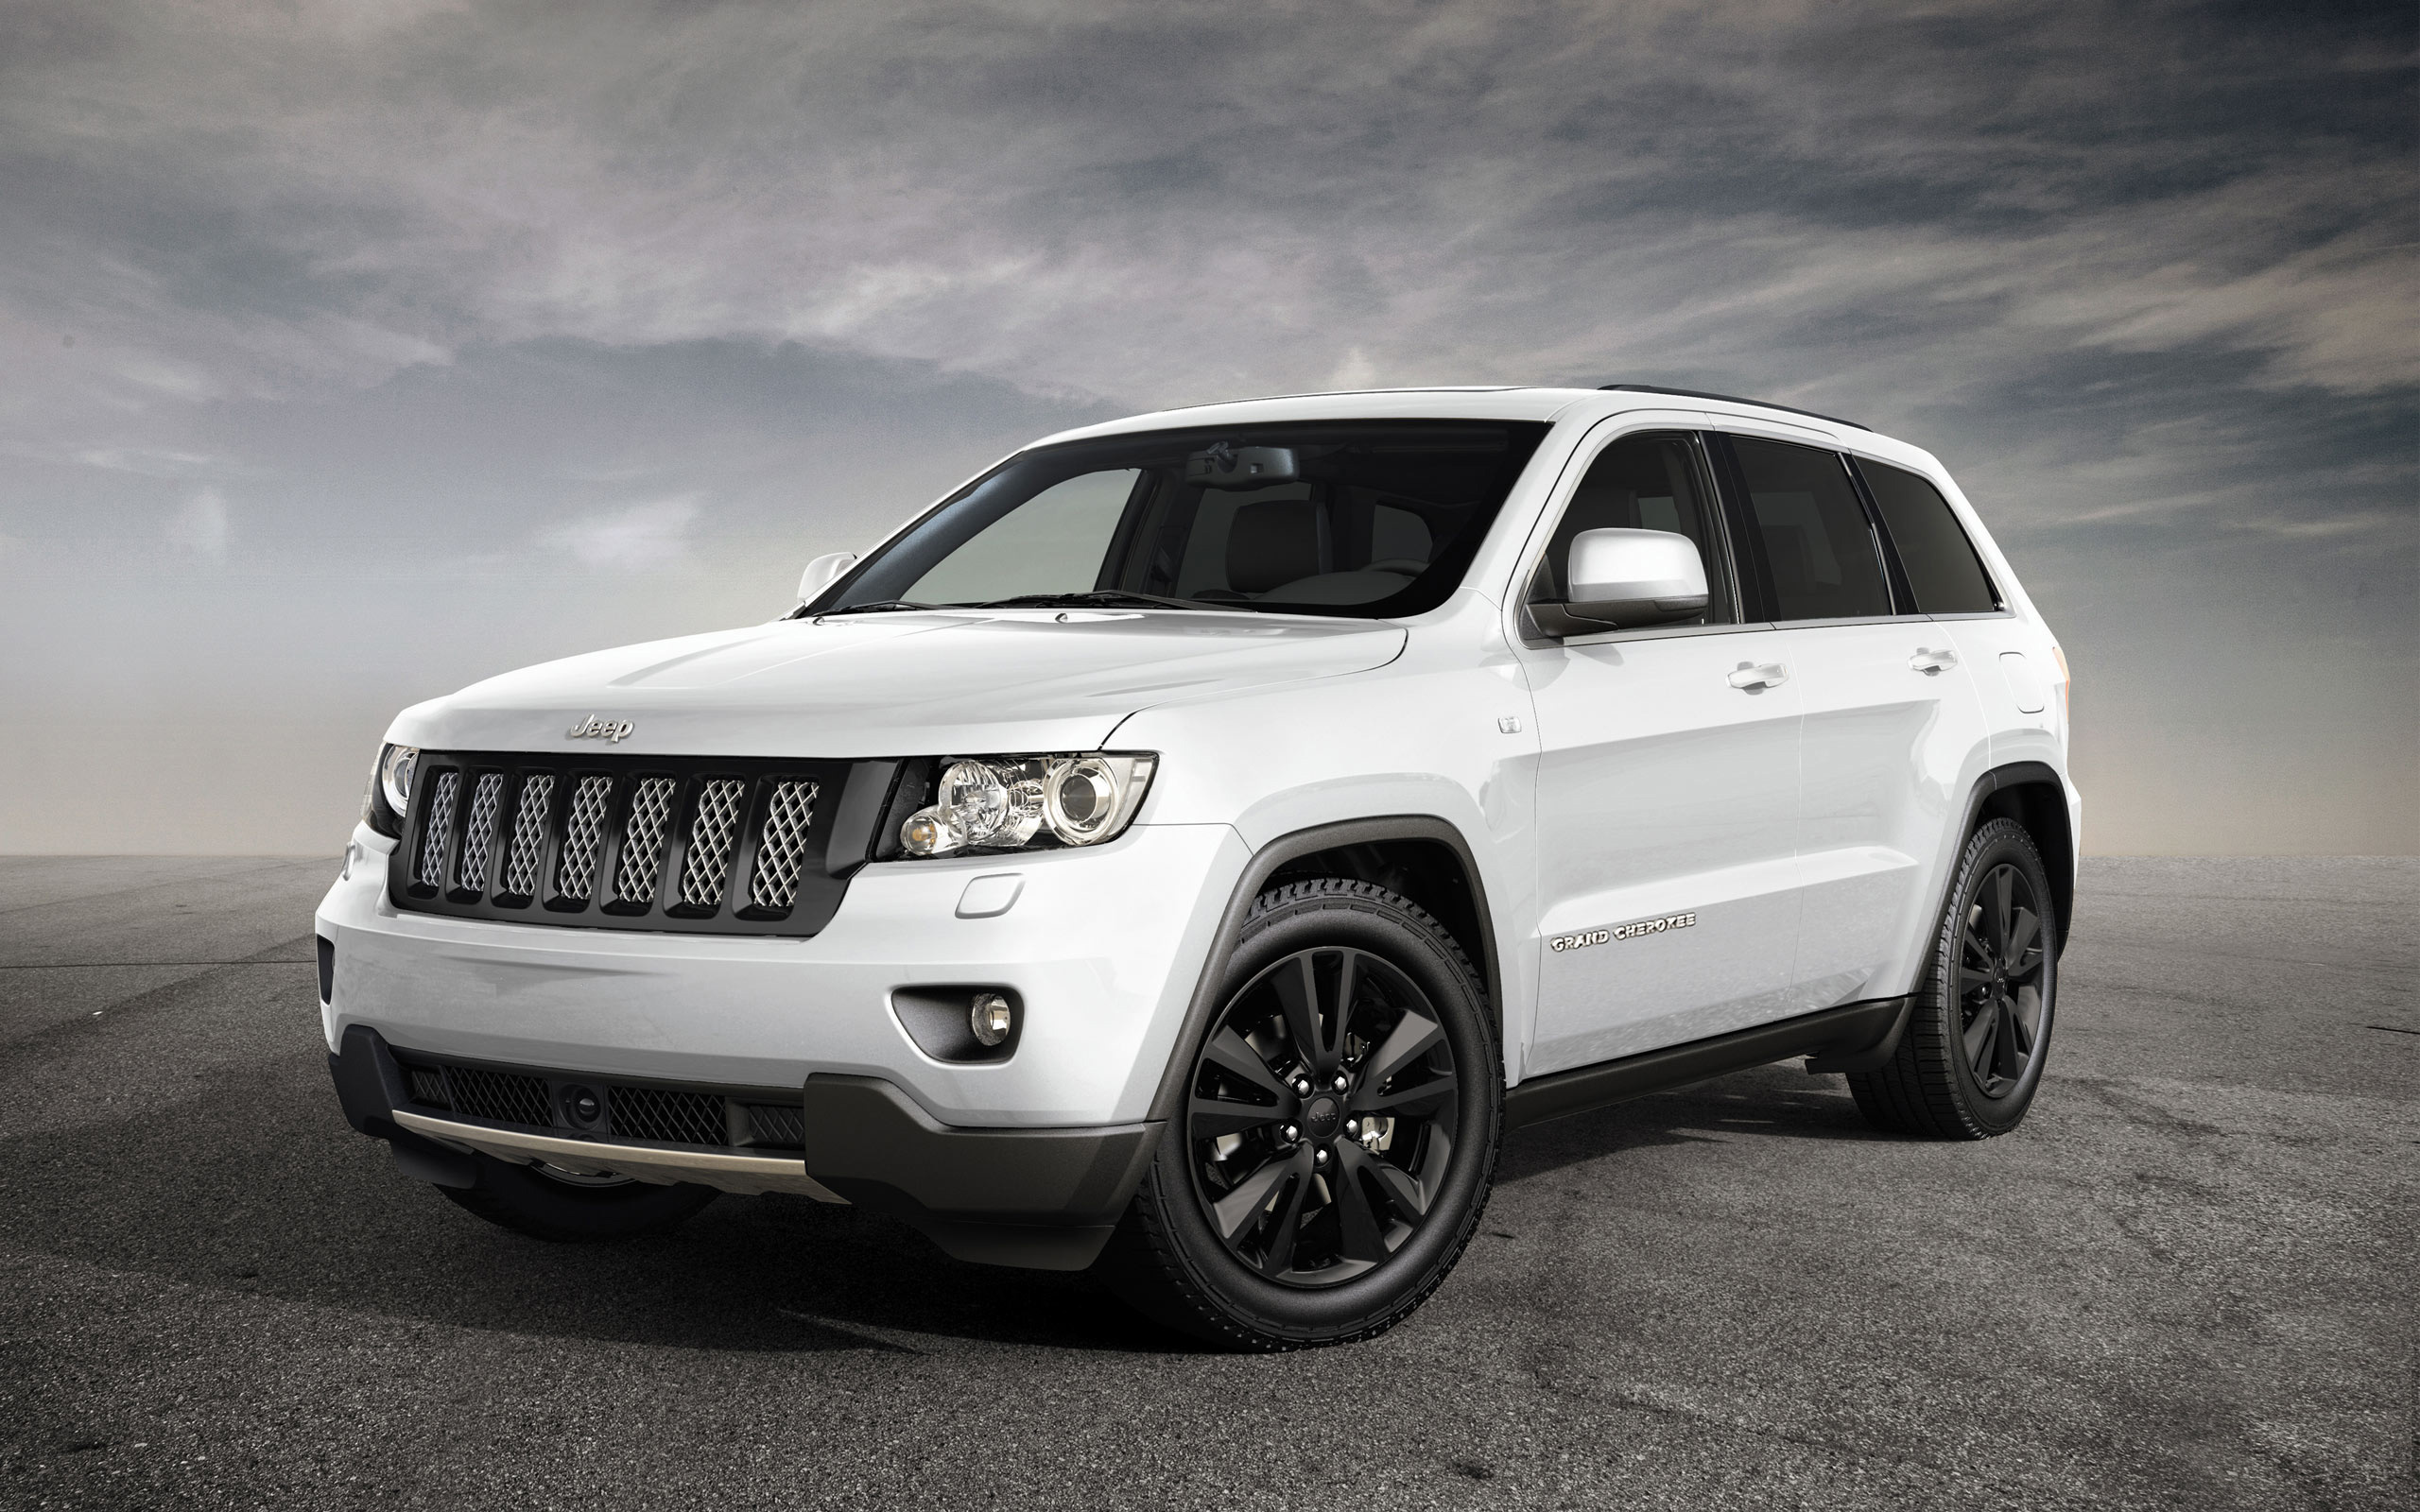 2012 jeep grand cherokee s limited wallpaper hd car. Black Bedroom Furniture Sets. Home Design Ideas